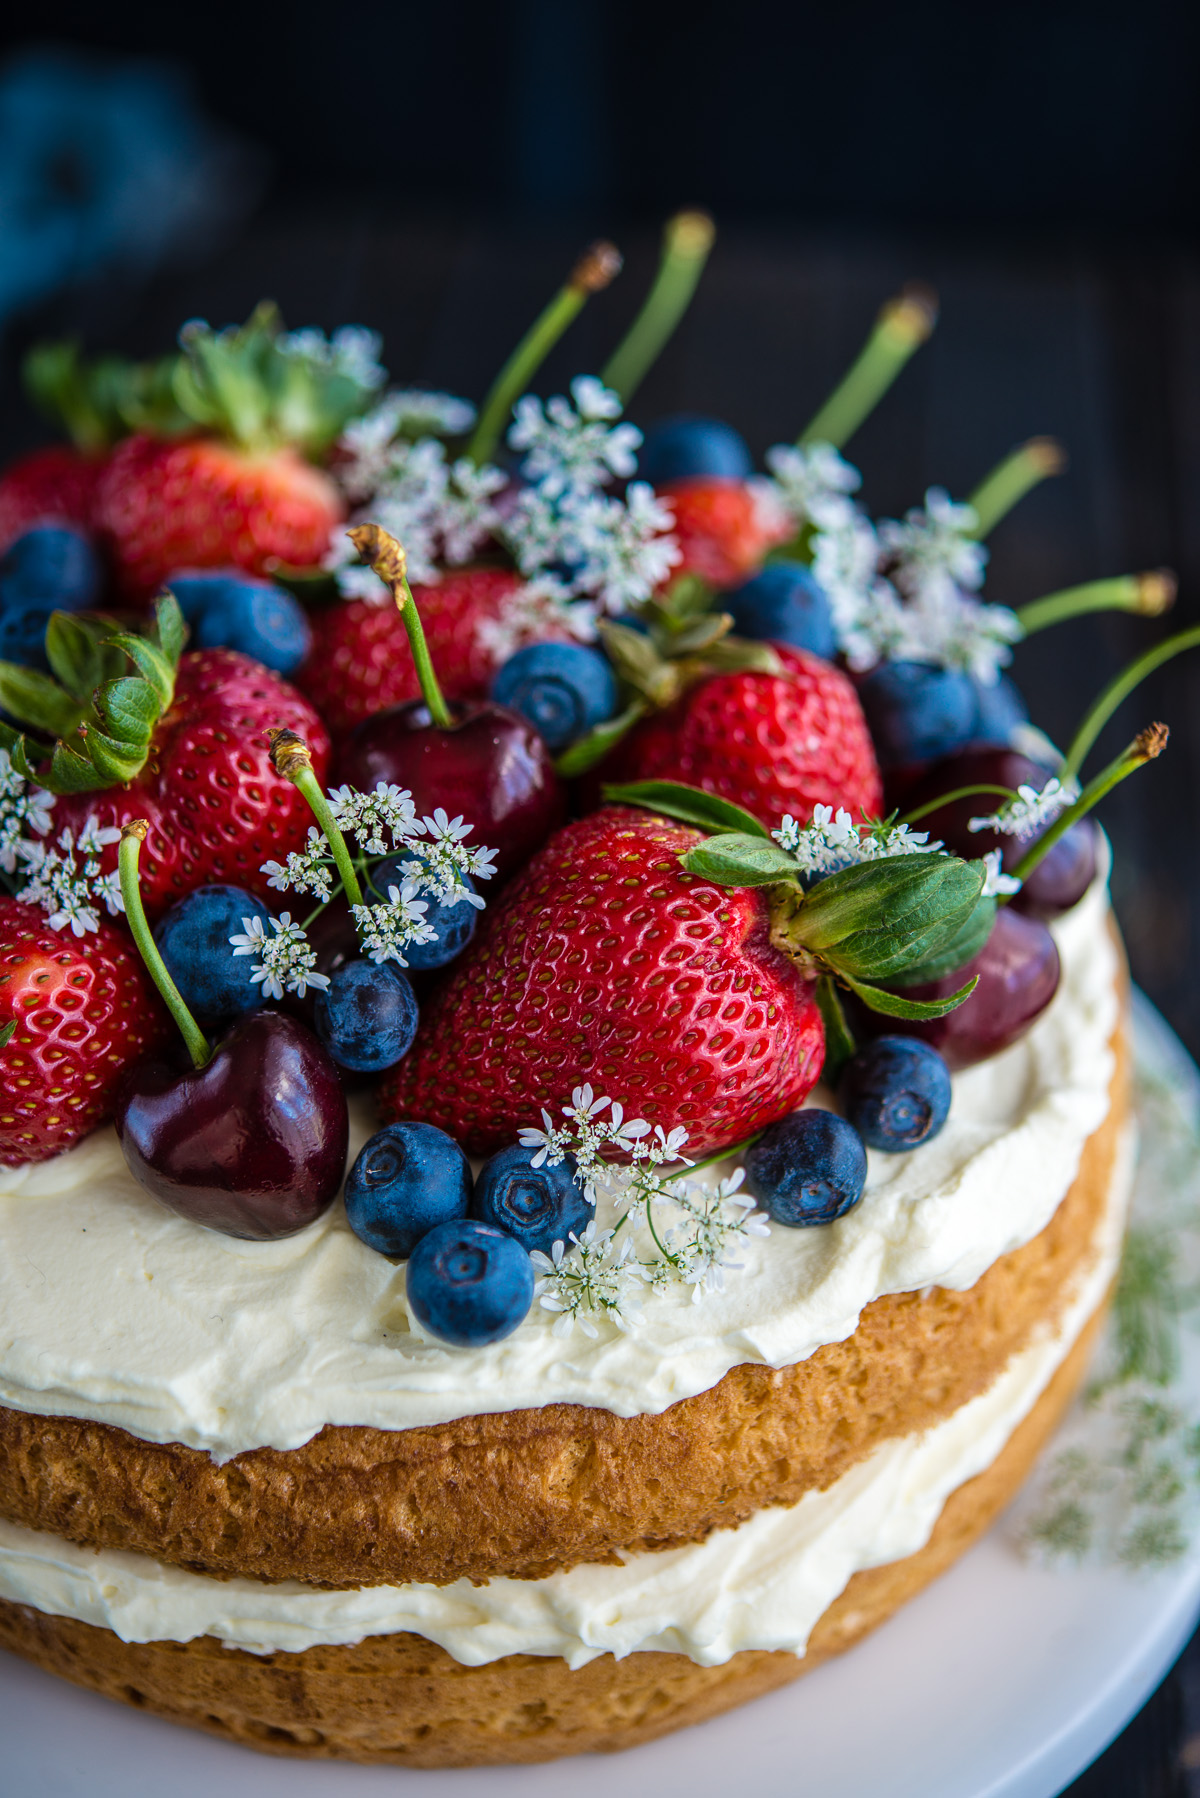 Jun 19,  · 9. While cakes cool, make the purees. You'll make the strawberry puree mixture separately from the blueberry one and have more strawberry than blueberry. To puree the berries, add them separately to a food processor and pulse until smooth.5/5(18).